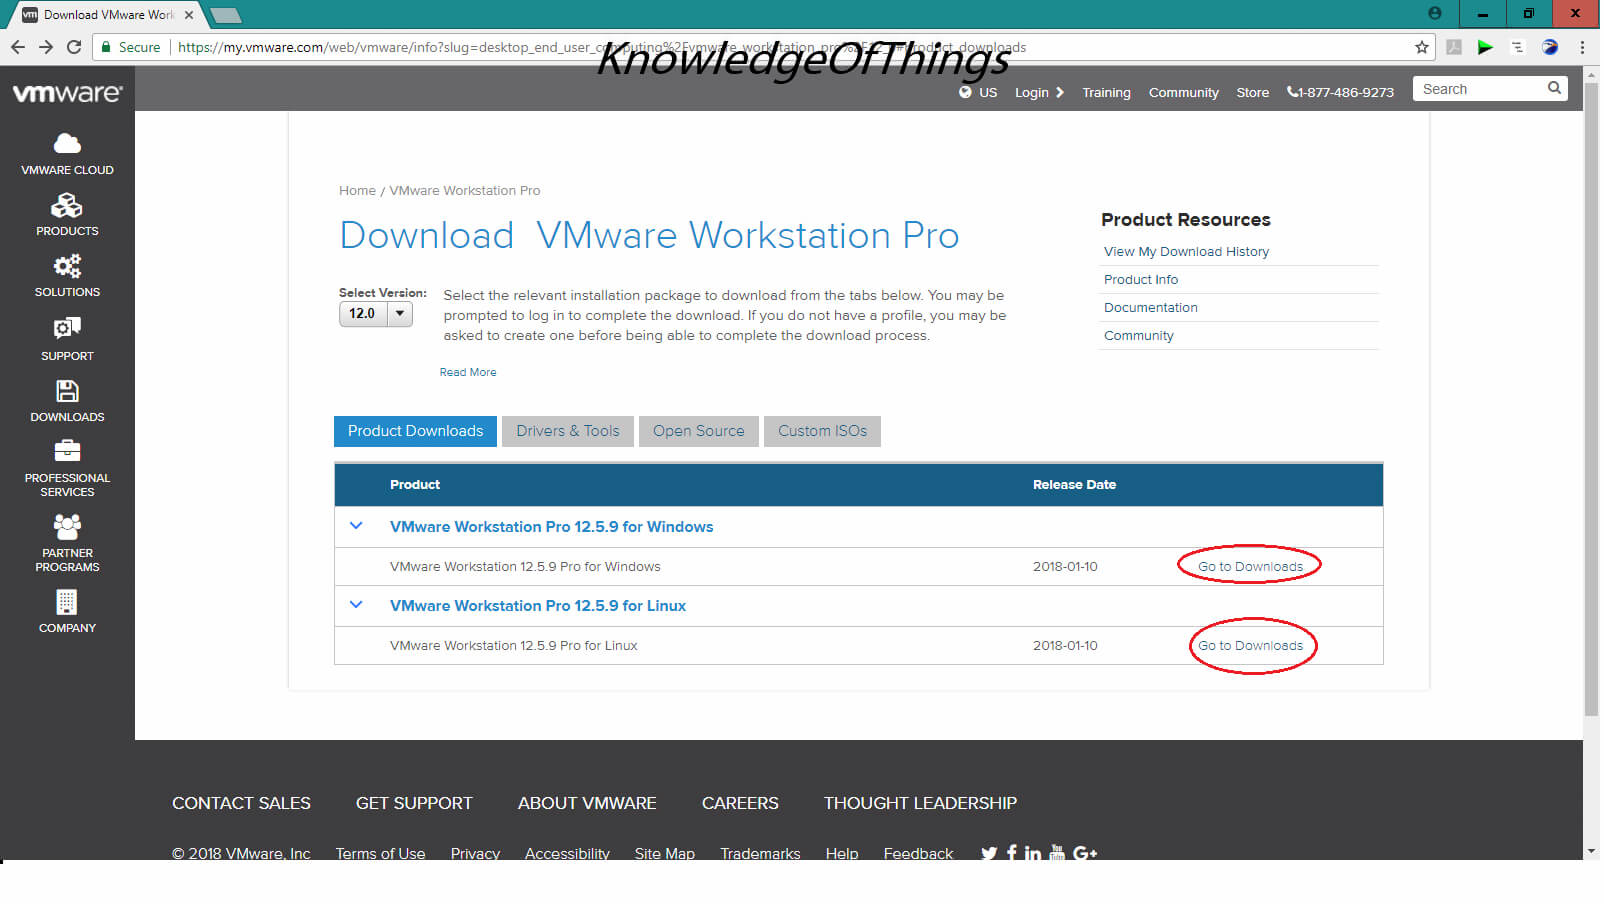 Install CentOS 7 as a Virtual Machine using VMware Workstation